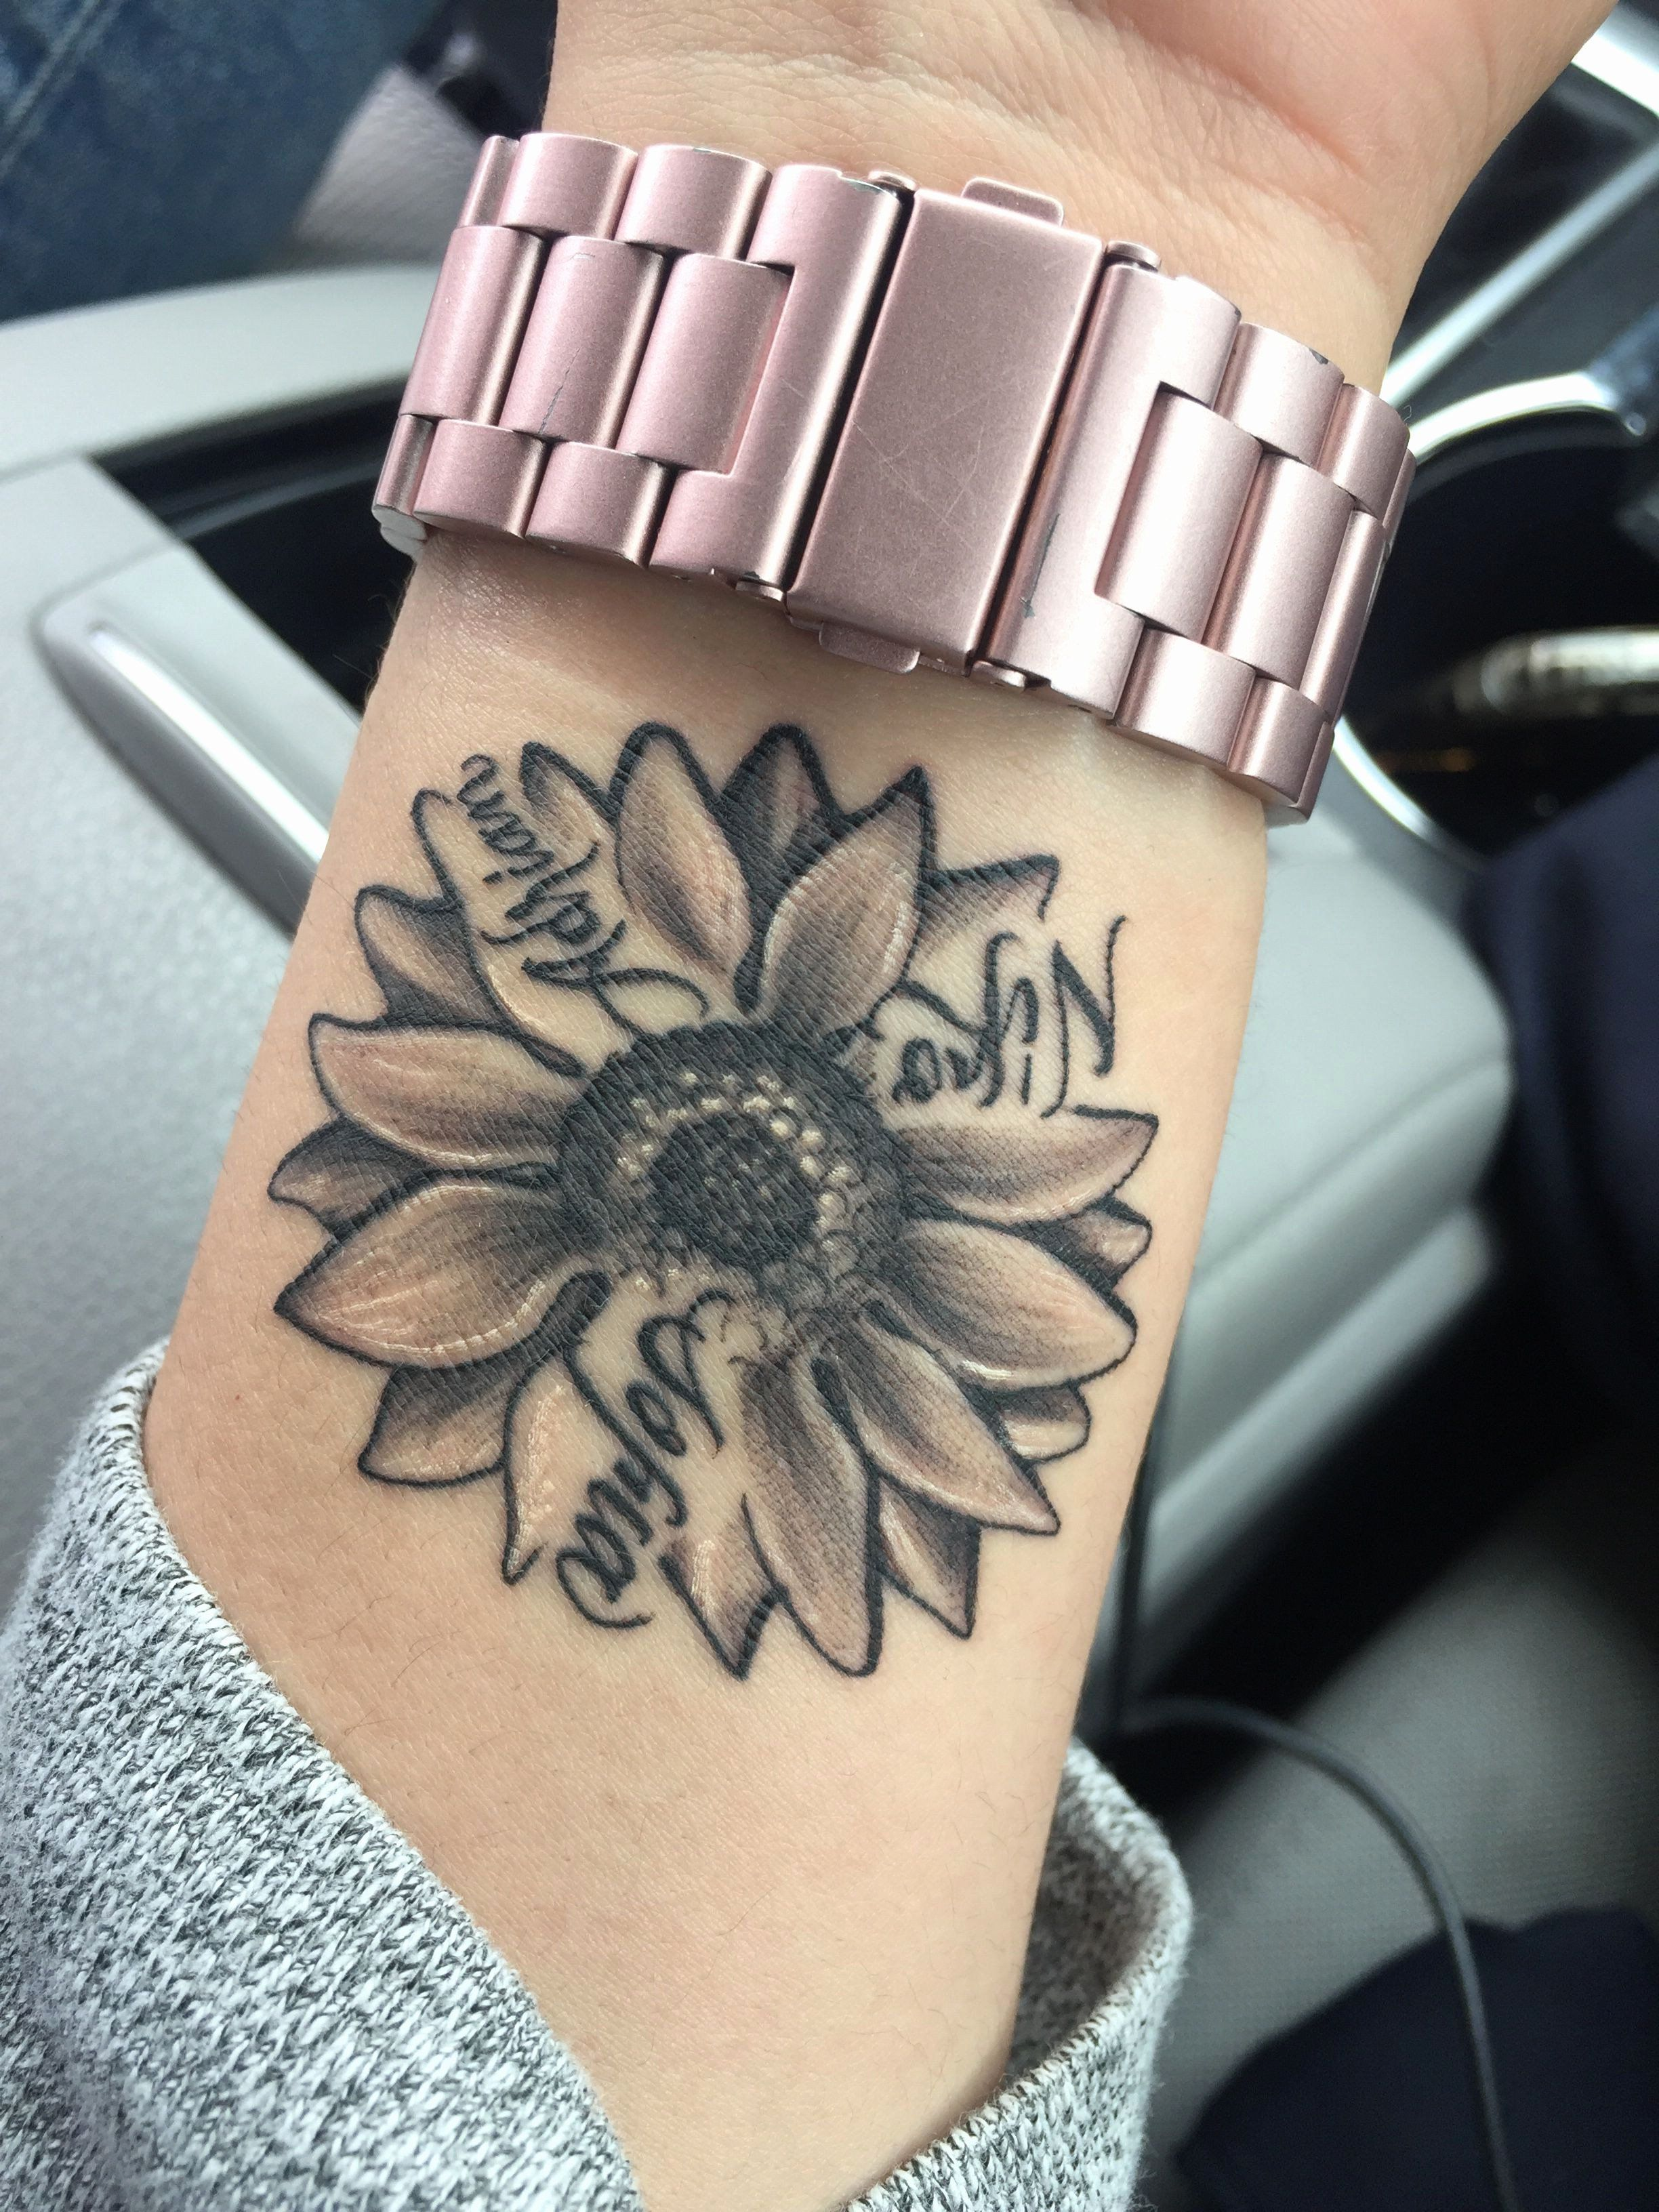 Unique Tattoos For Mothers With Children Unique Tattoos Children Mothers Tattoos Tatt In 2020 Tattoos For Daughters Tattoos For Kids Beautiful Small Tattoos